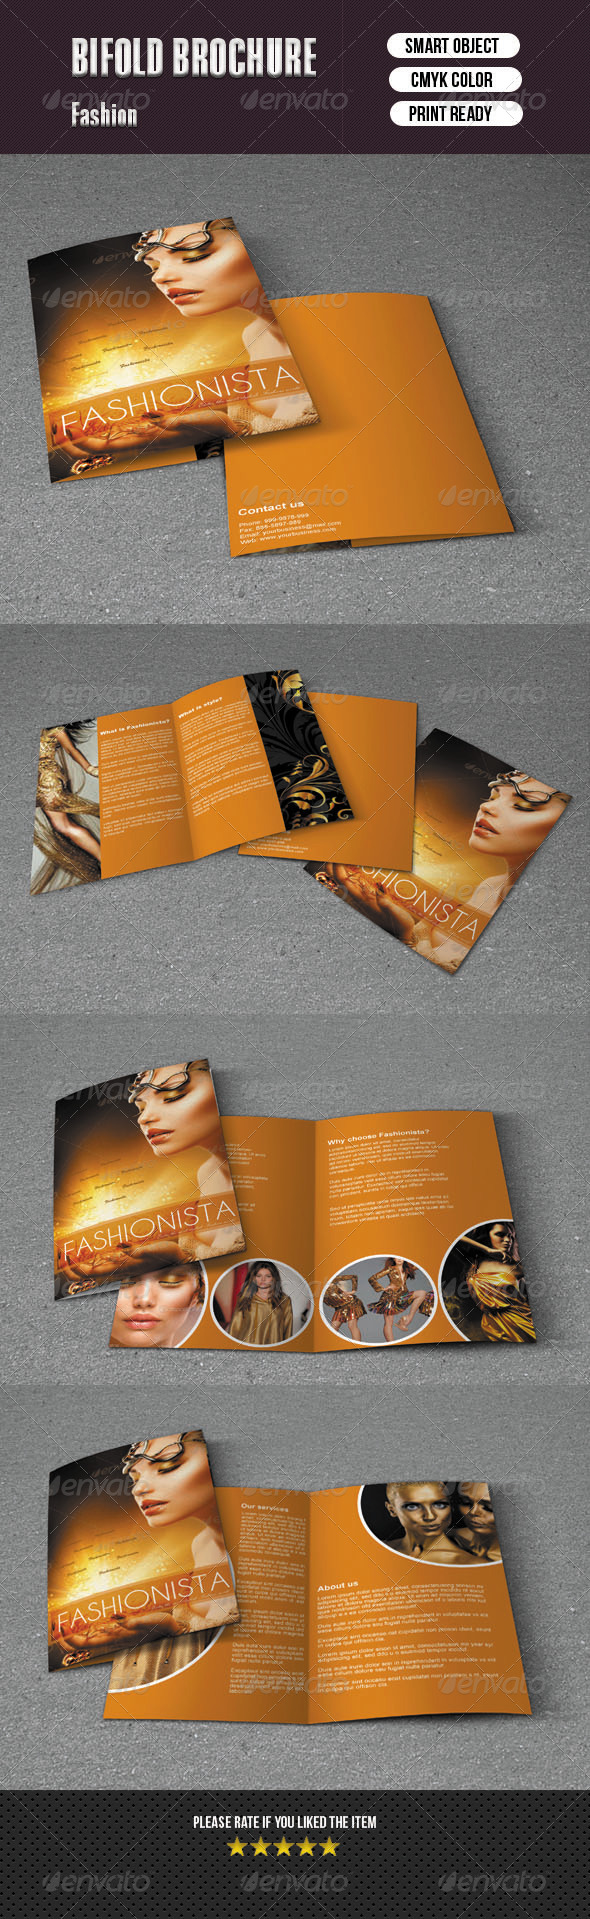 GraphicRiver Bifold Brochure For Fashion 6065611